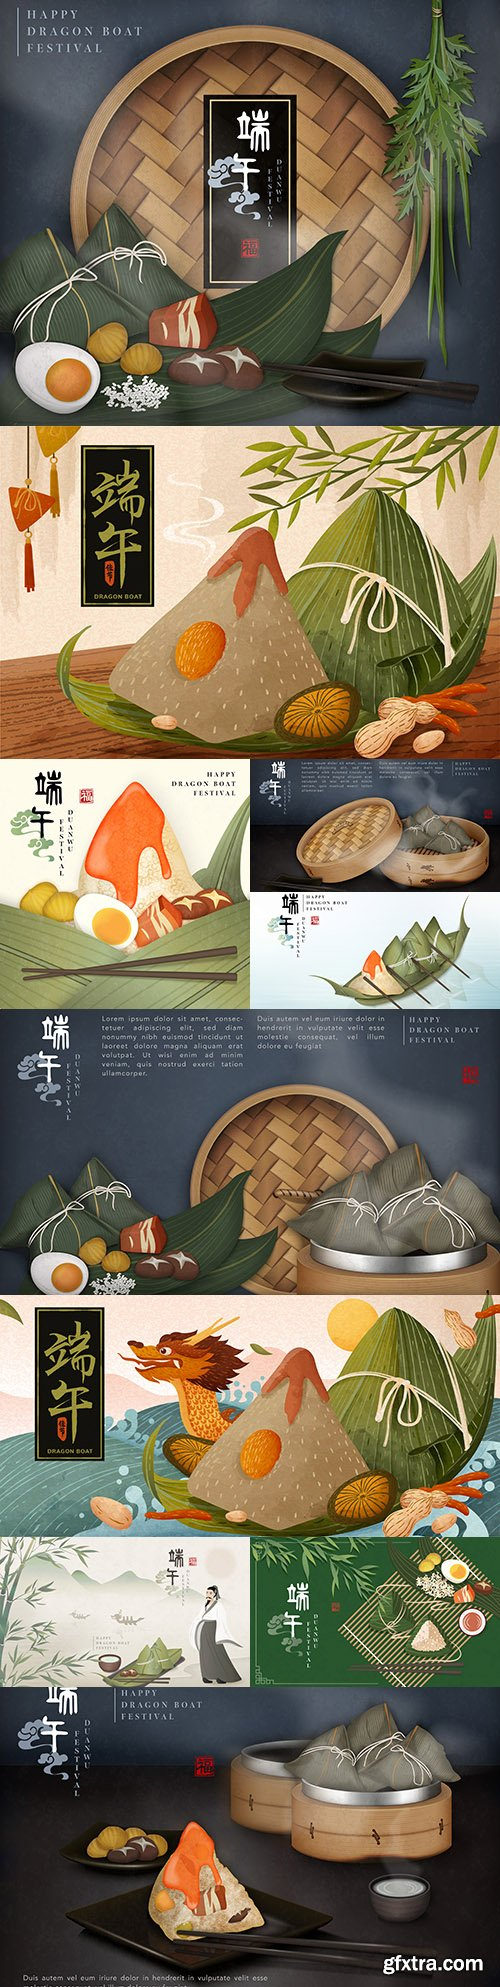 Happy dragon boat festival template with traditional food